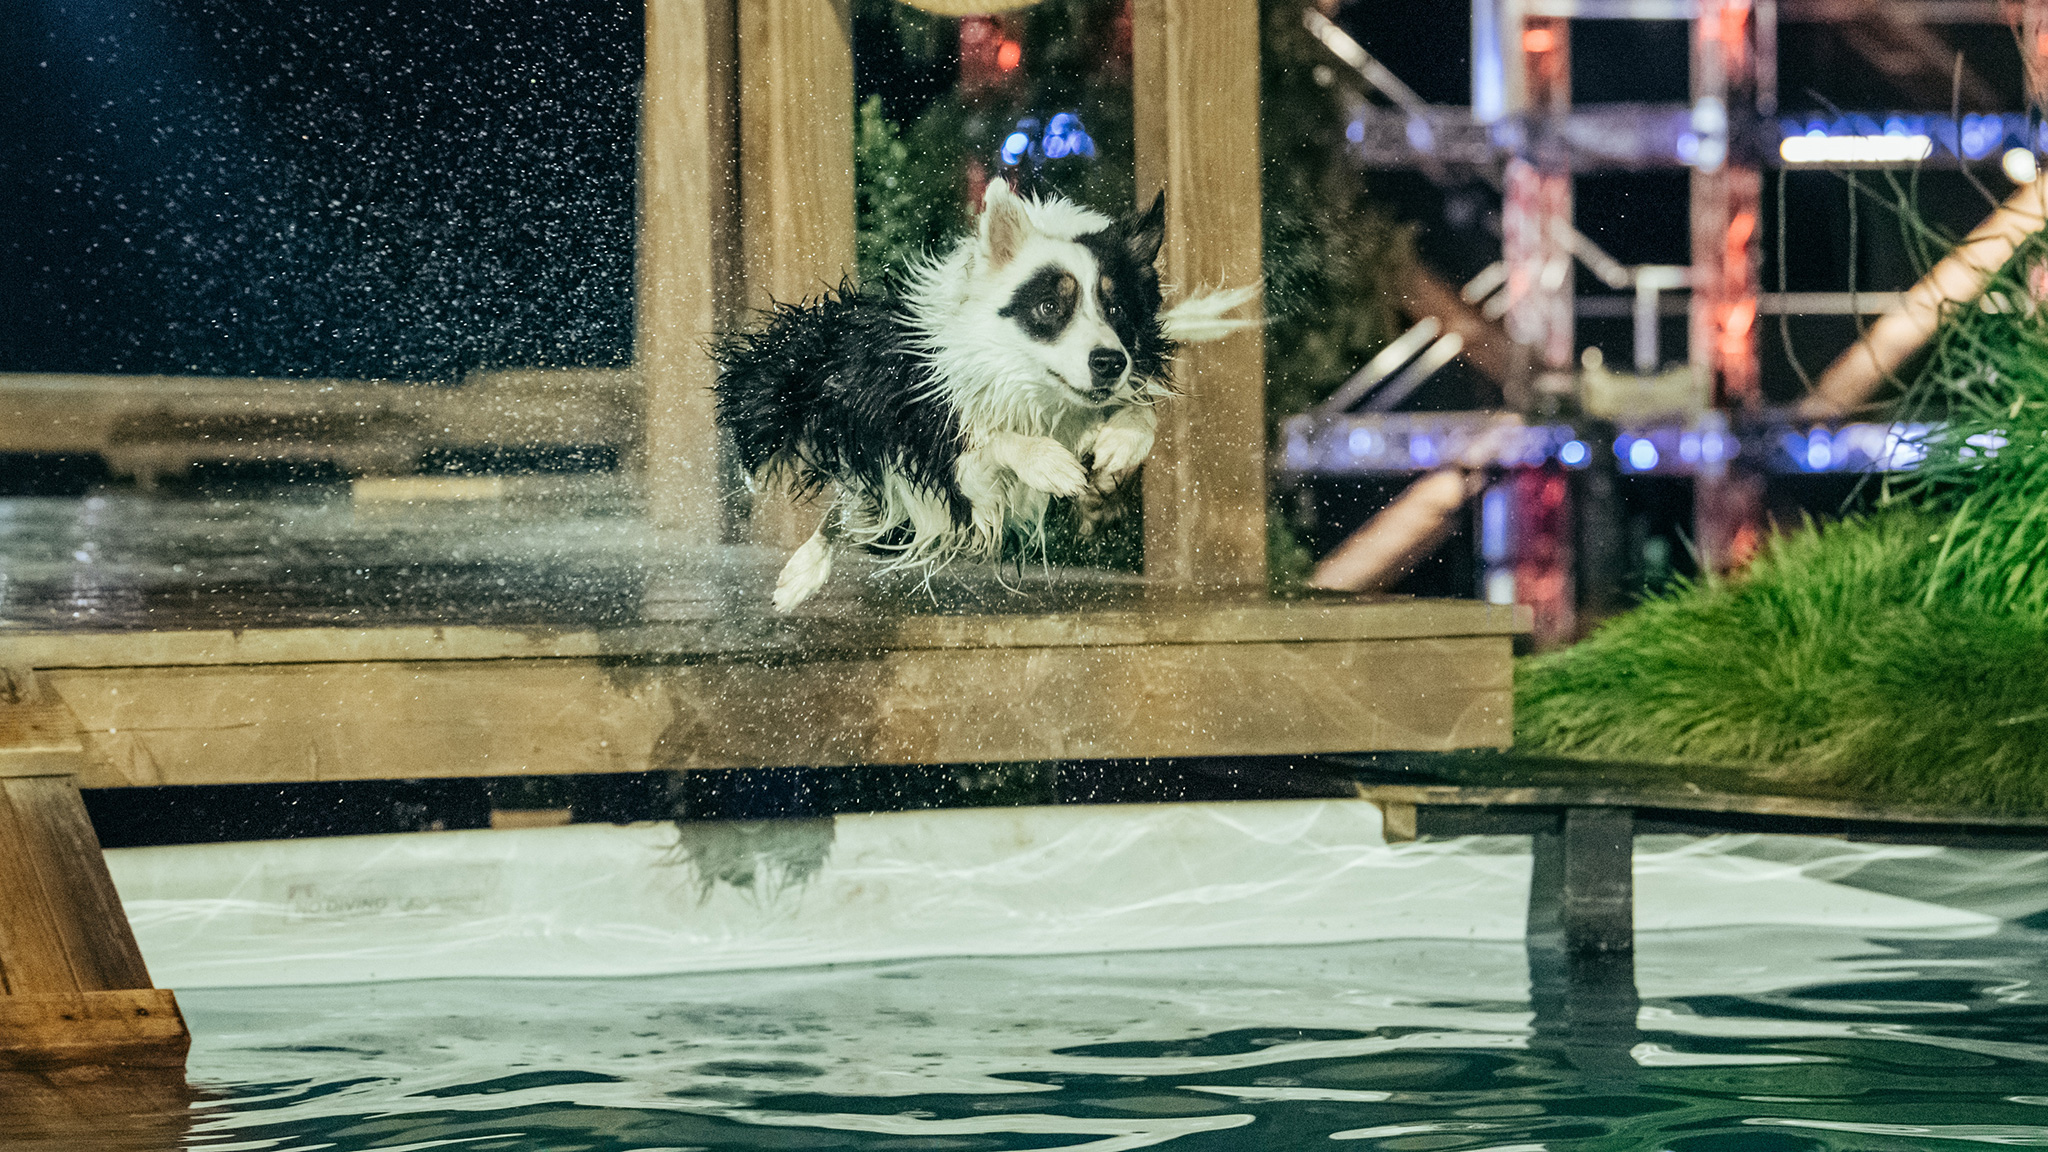 A furry participant takes a flying leap into the Splashdown pool